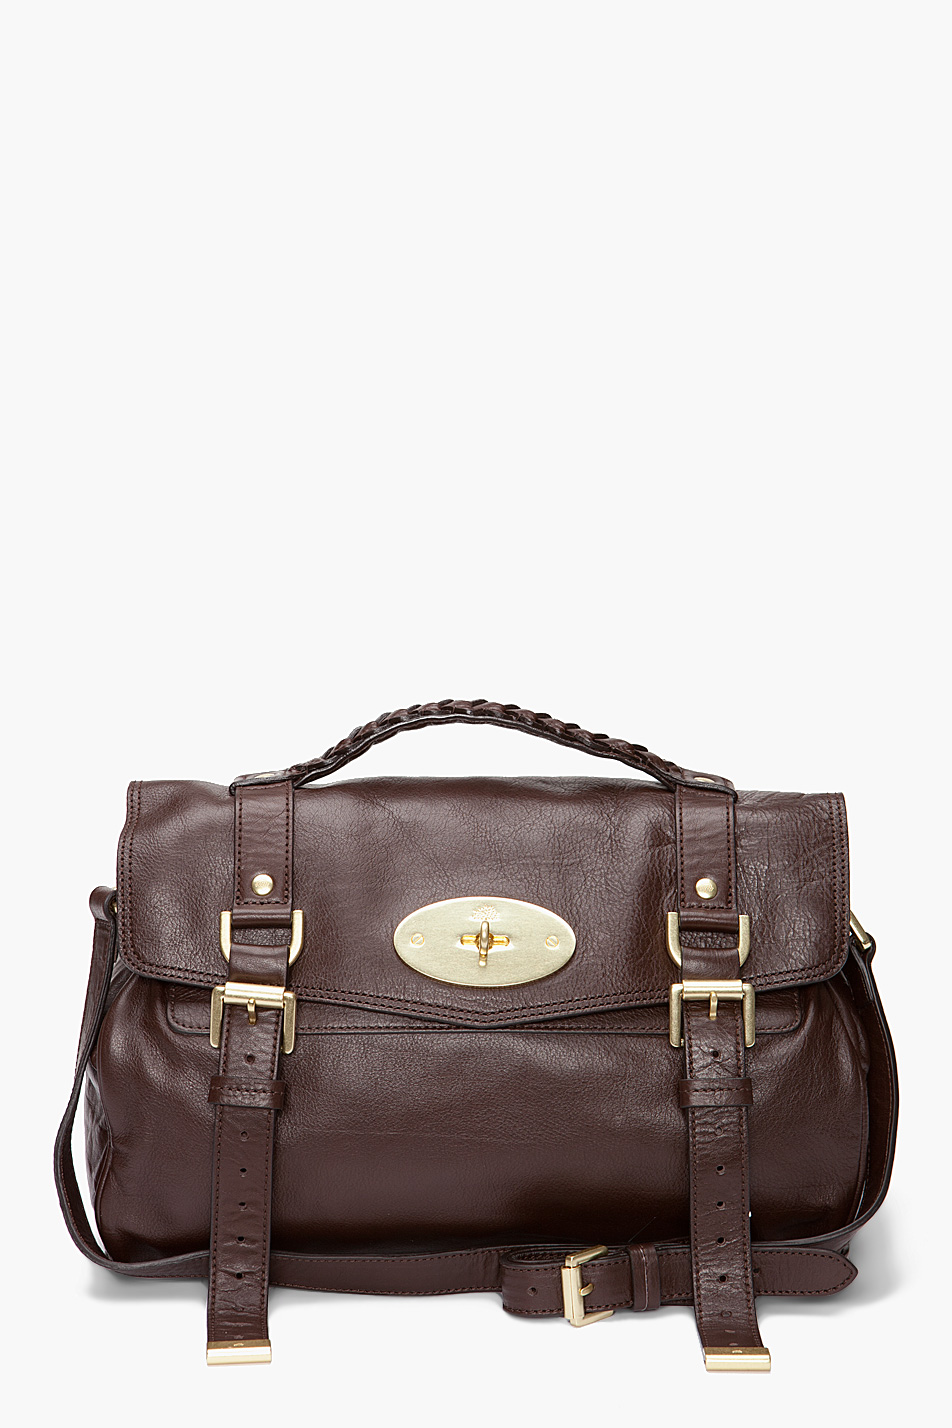 ... new product 591fa 78e2f Lyst - Mulberry The Alexa Bag in Brown ... 20278bb22d9ec